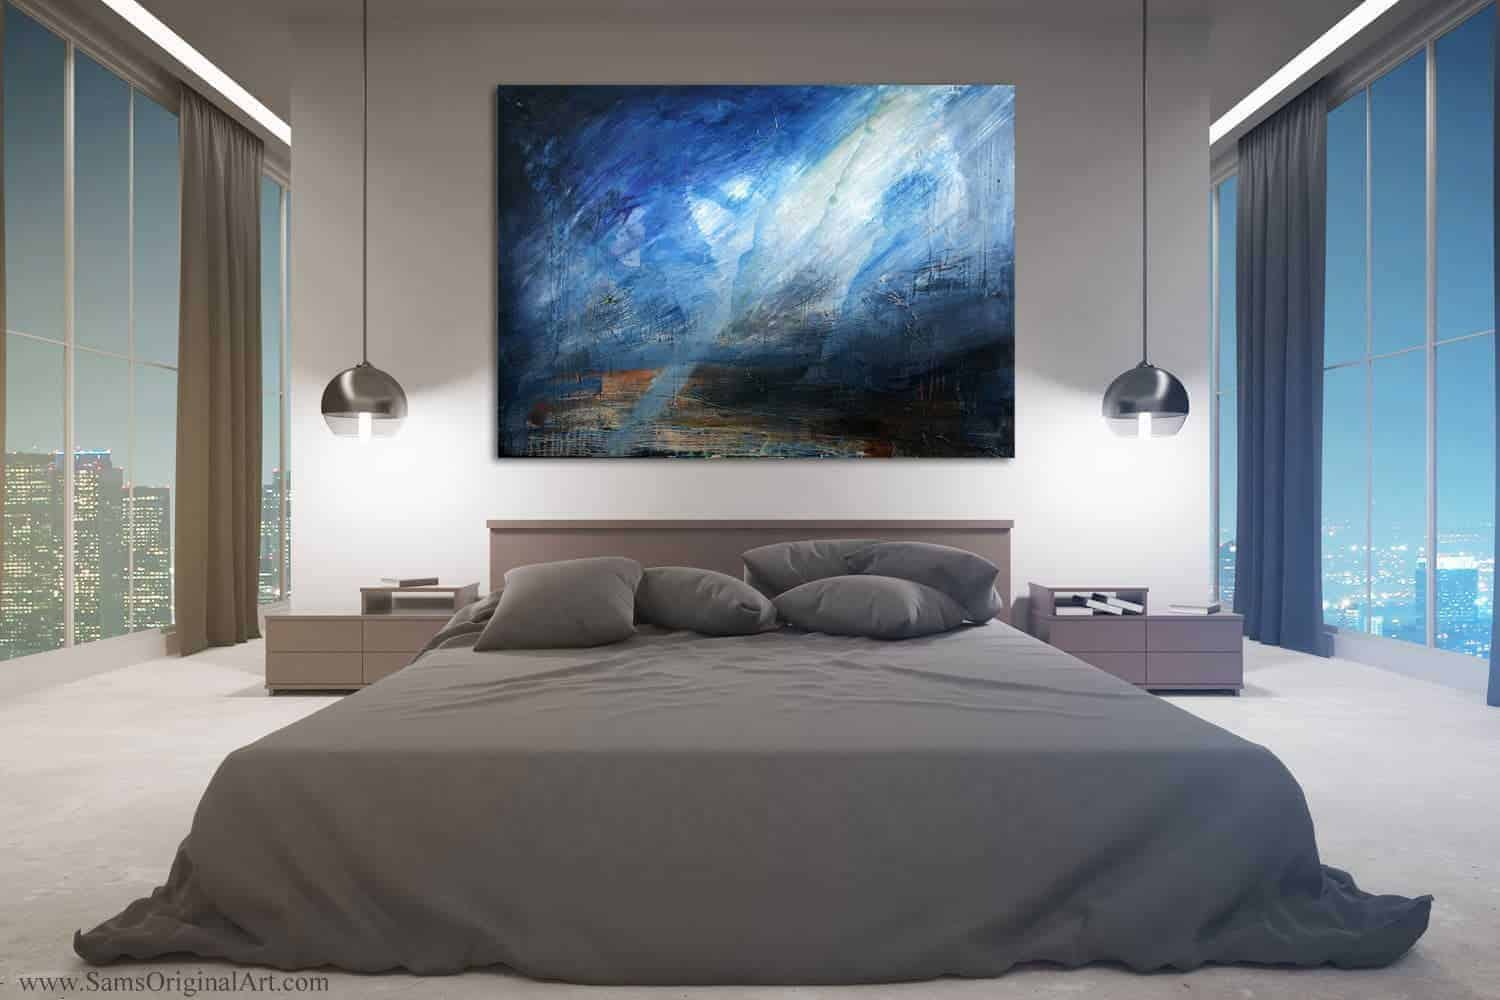 Bedroom Giclee Wall Print Title: Cerulean